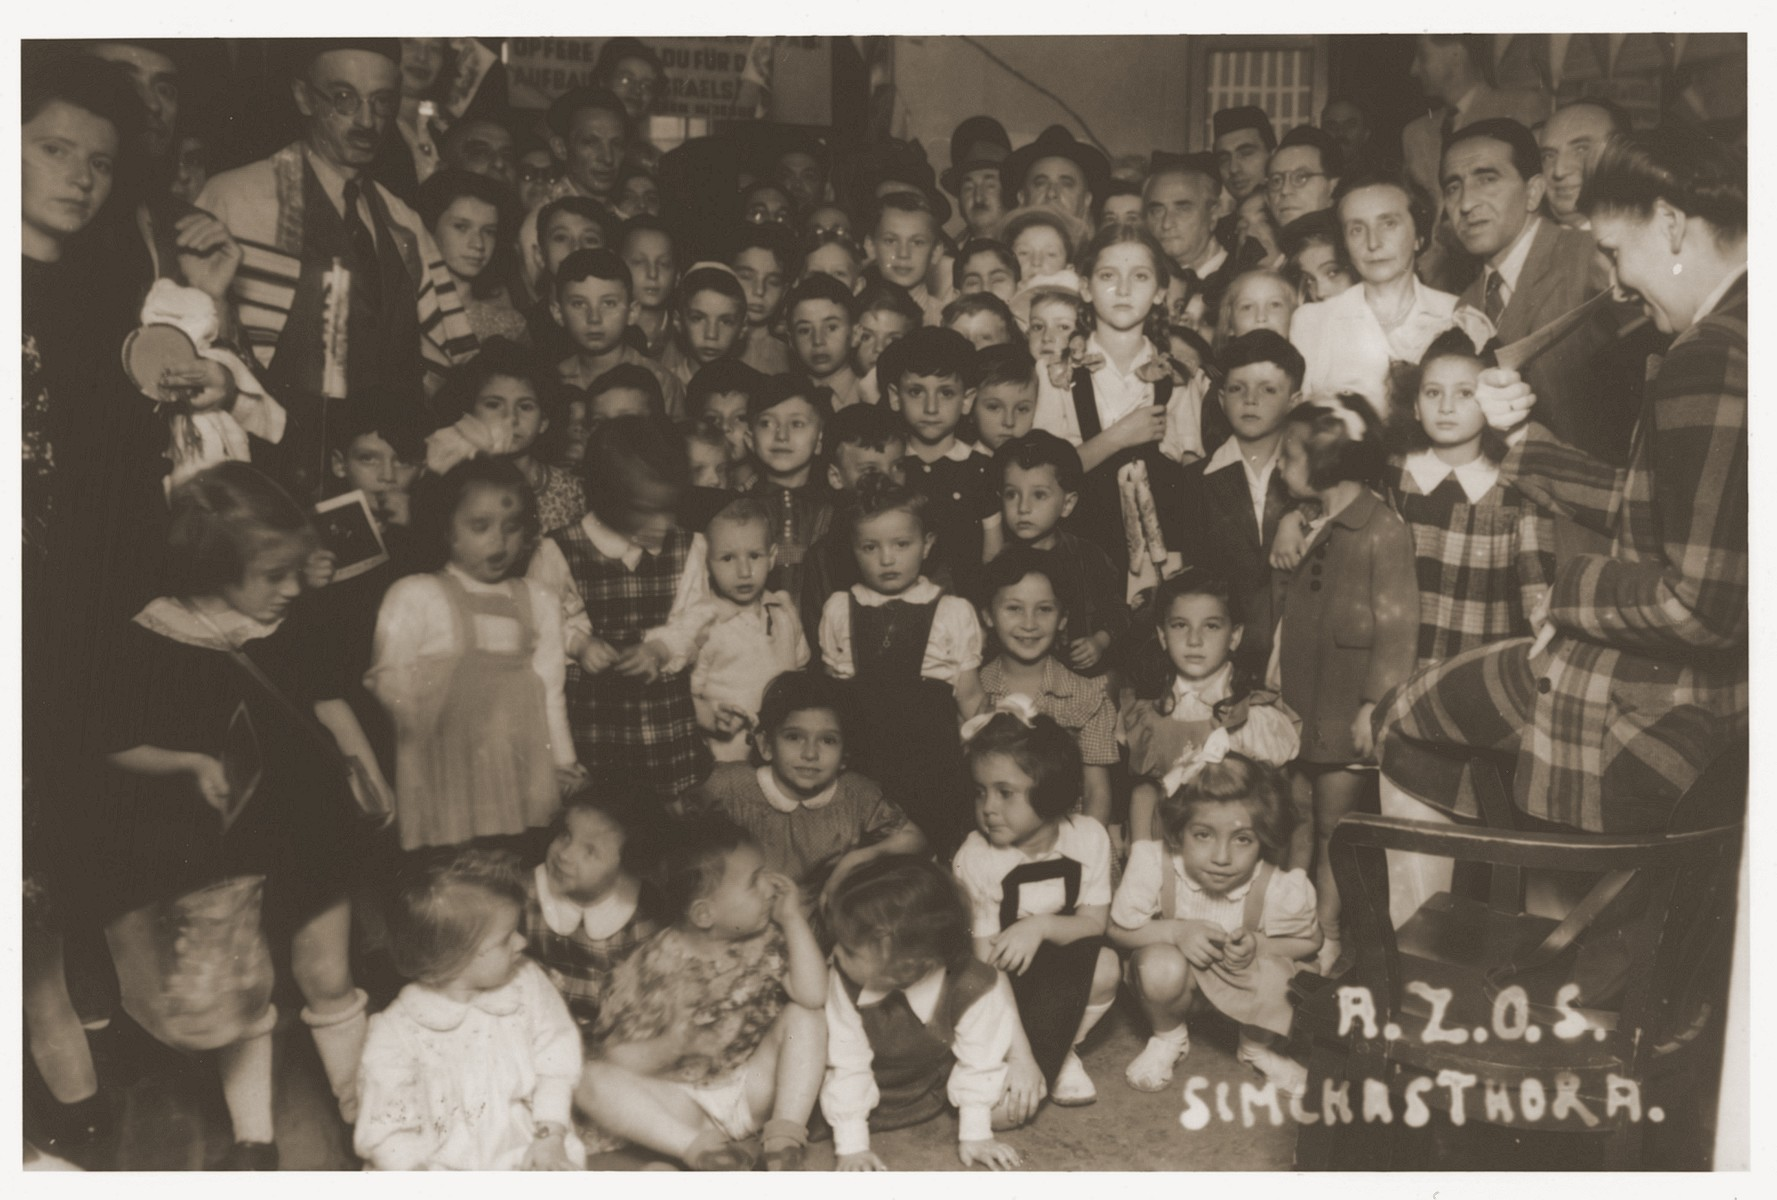 Students celebrate Simhat Torah at the A.Z.O.S. school in Shanghai.    Harry Fiedler is pictured standing in front of the teacher in the white blouse.